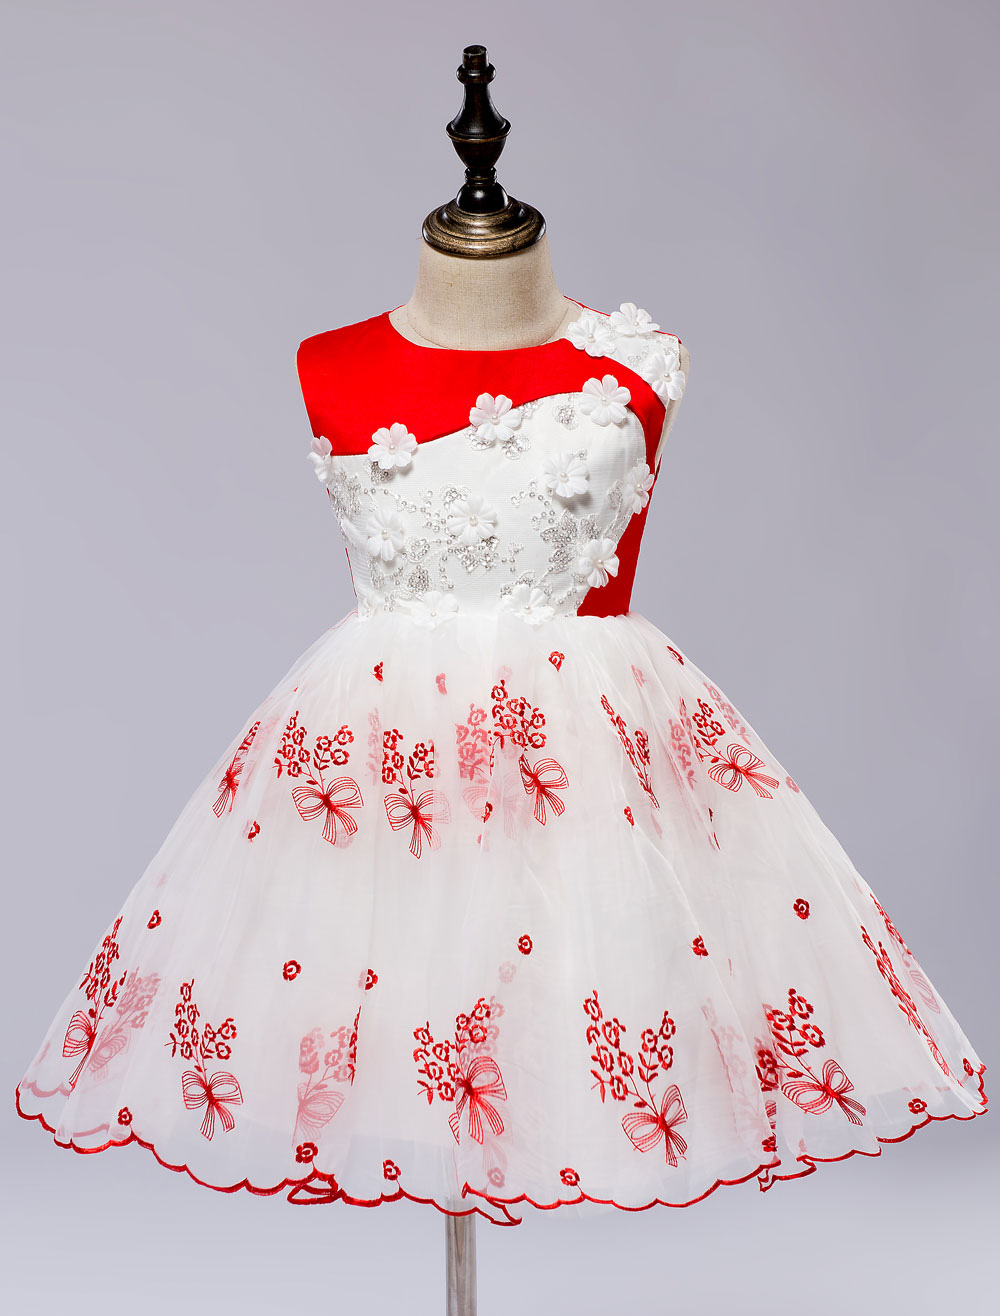 Buy Flower Girl's Dress Lace Applique Princess Toddler's Pageant Dress Satin Knee Length Toddlers Dresses for $35.14 in Milanoo store